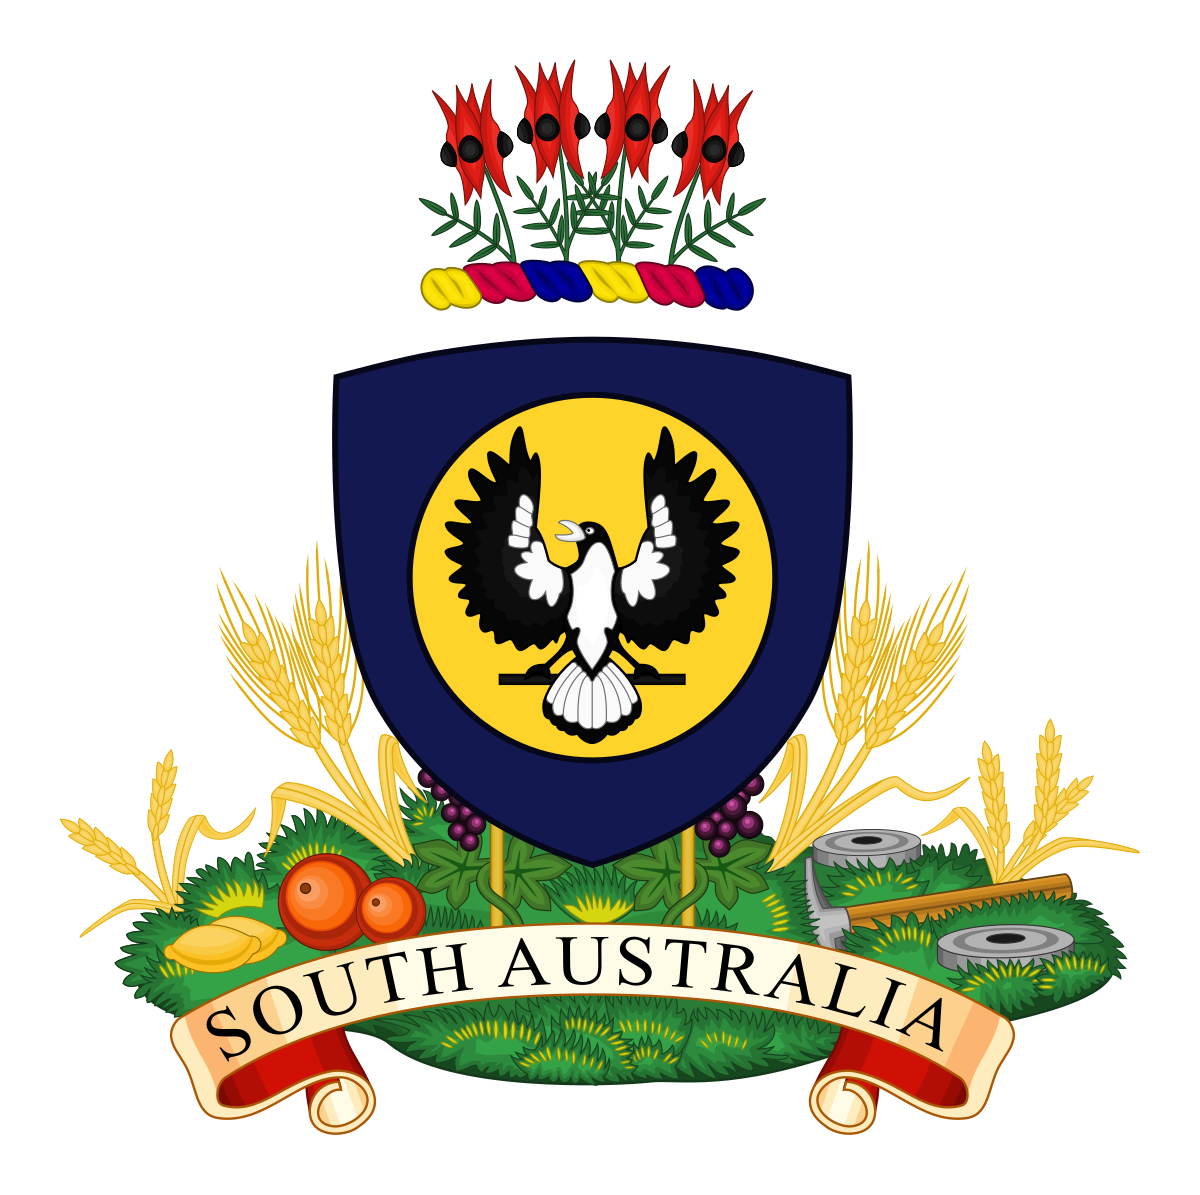 Coat of arms south. Wheat clipart heraldic